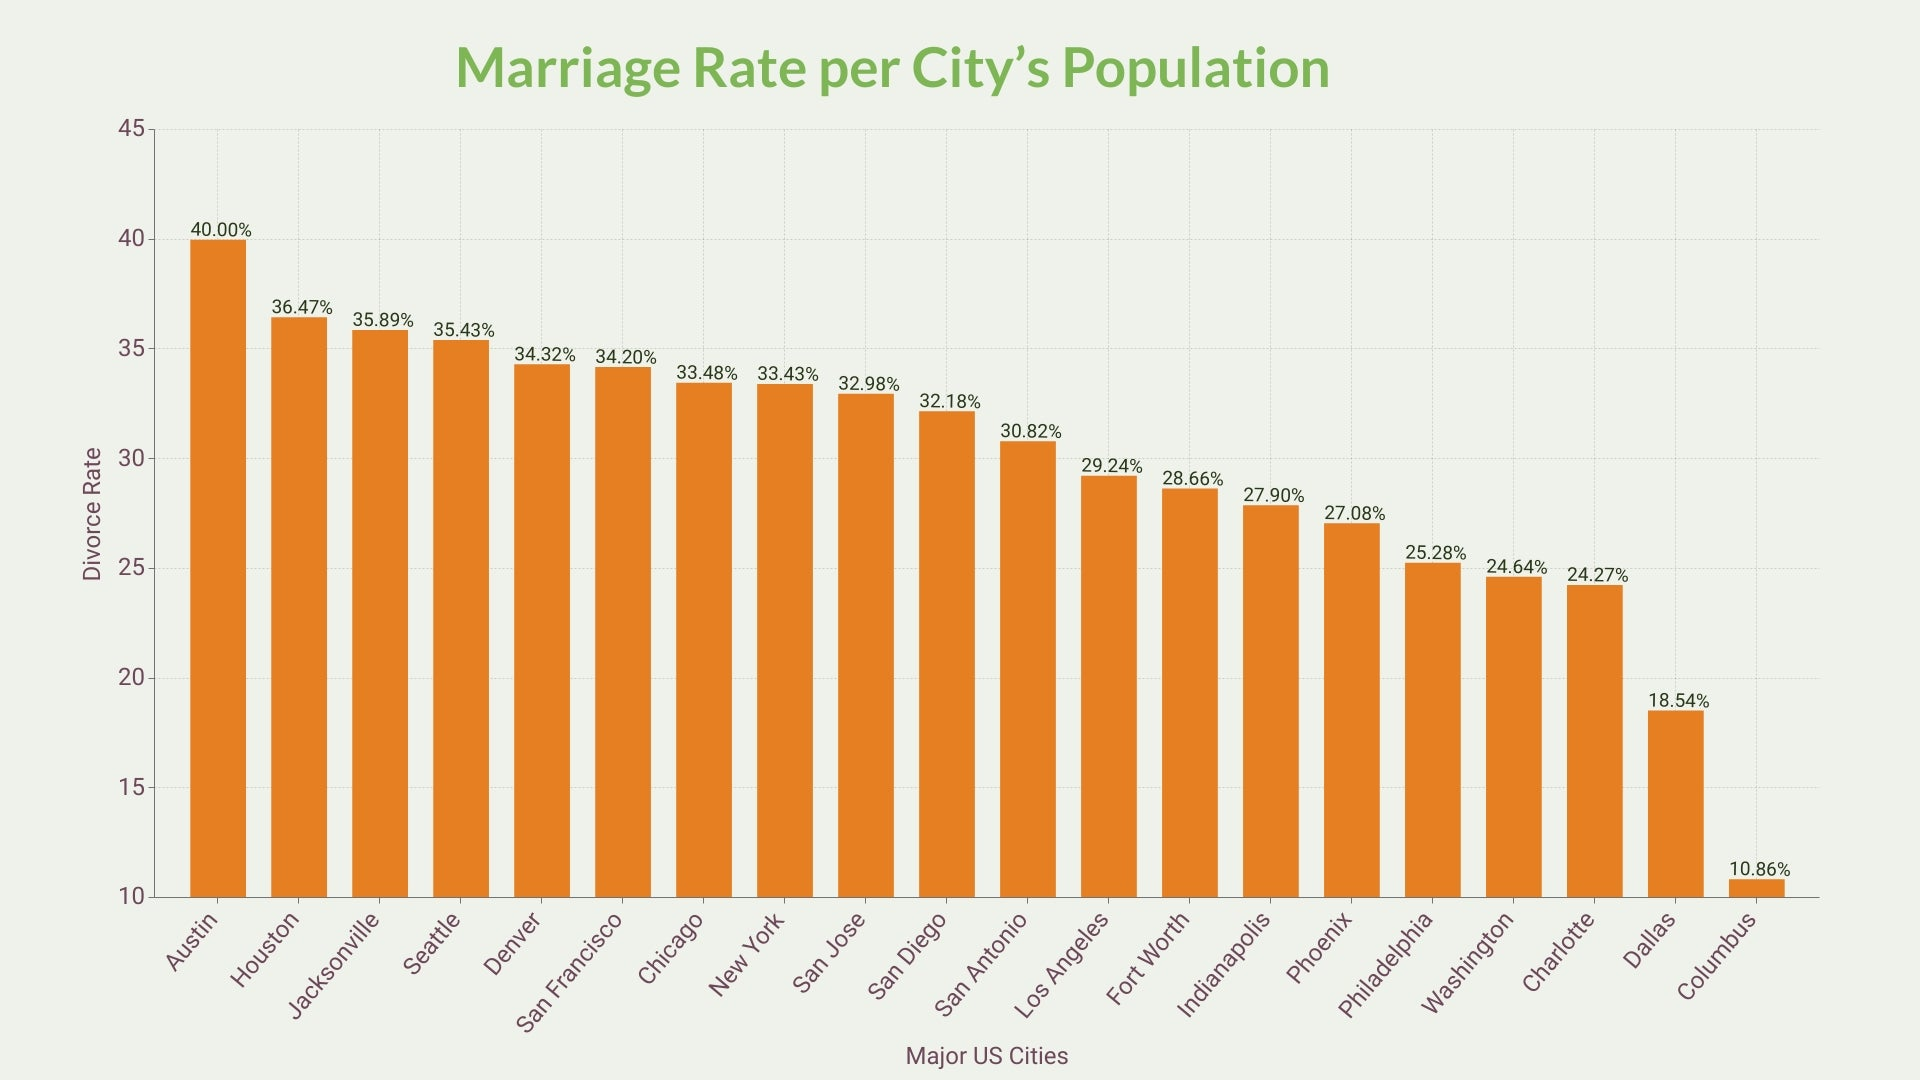 Marriage Rate per City's Population